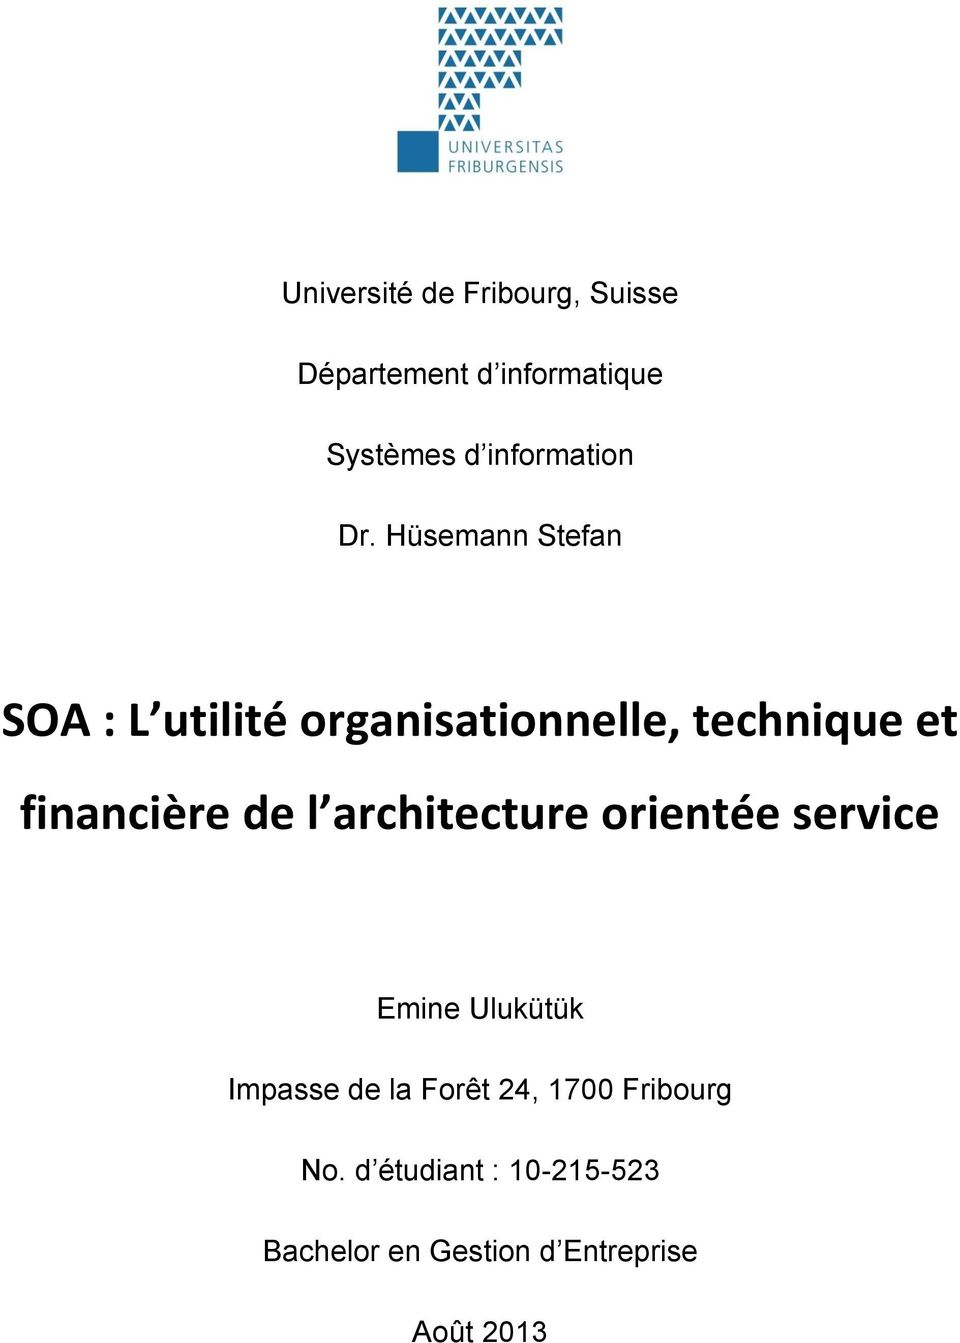 Soa l utilit organisationnelle technique et financi re for Architecture orientee service